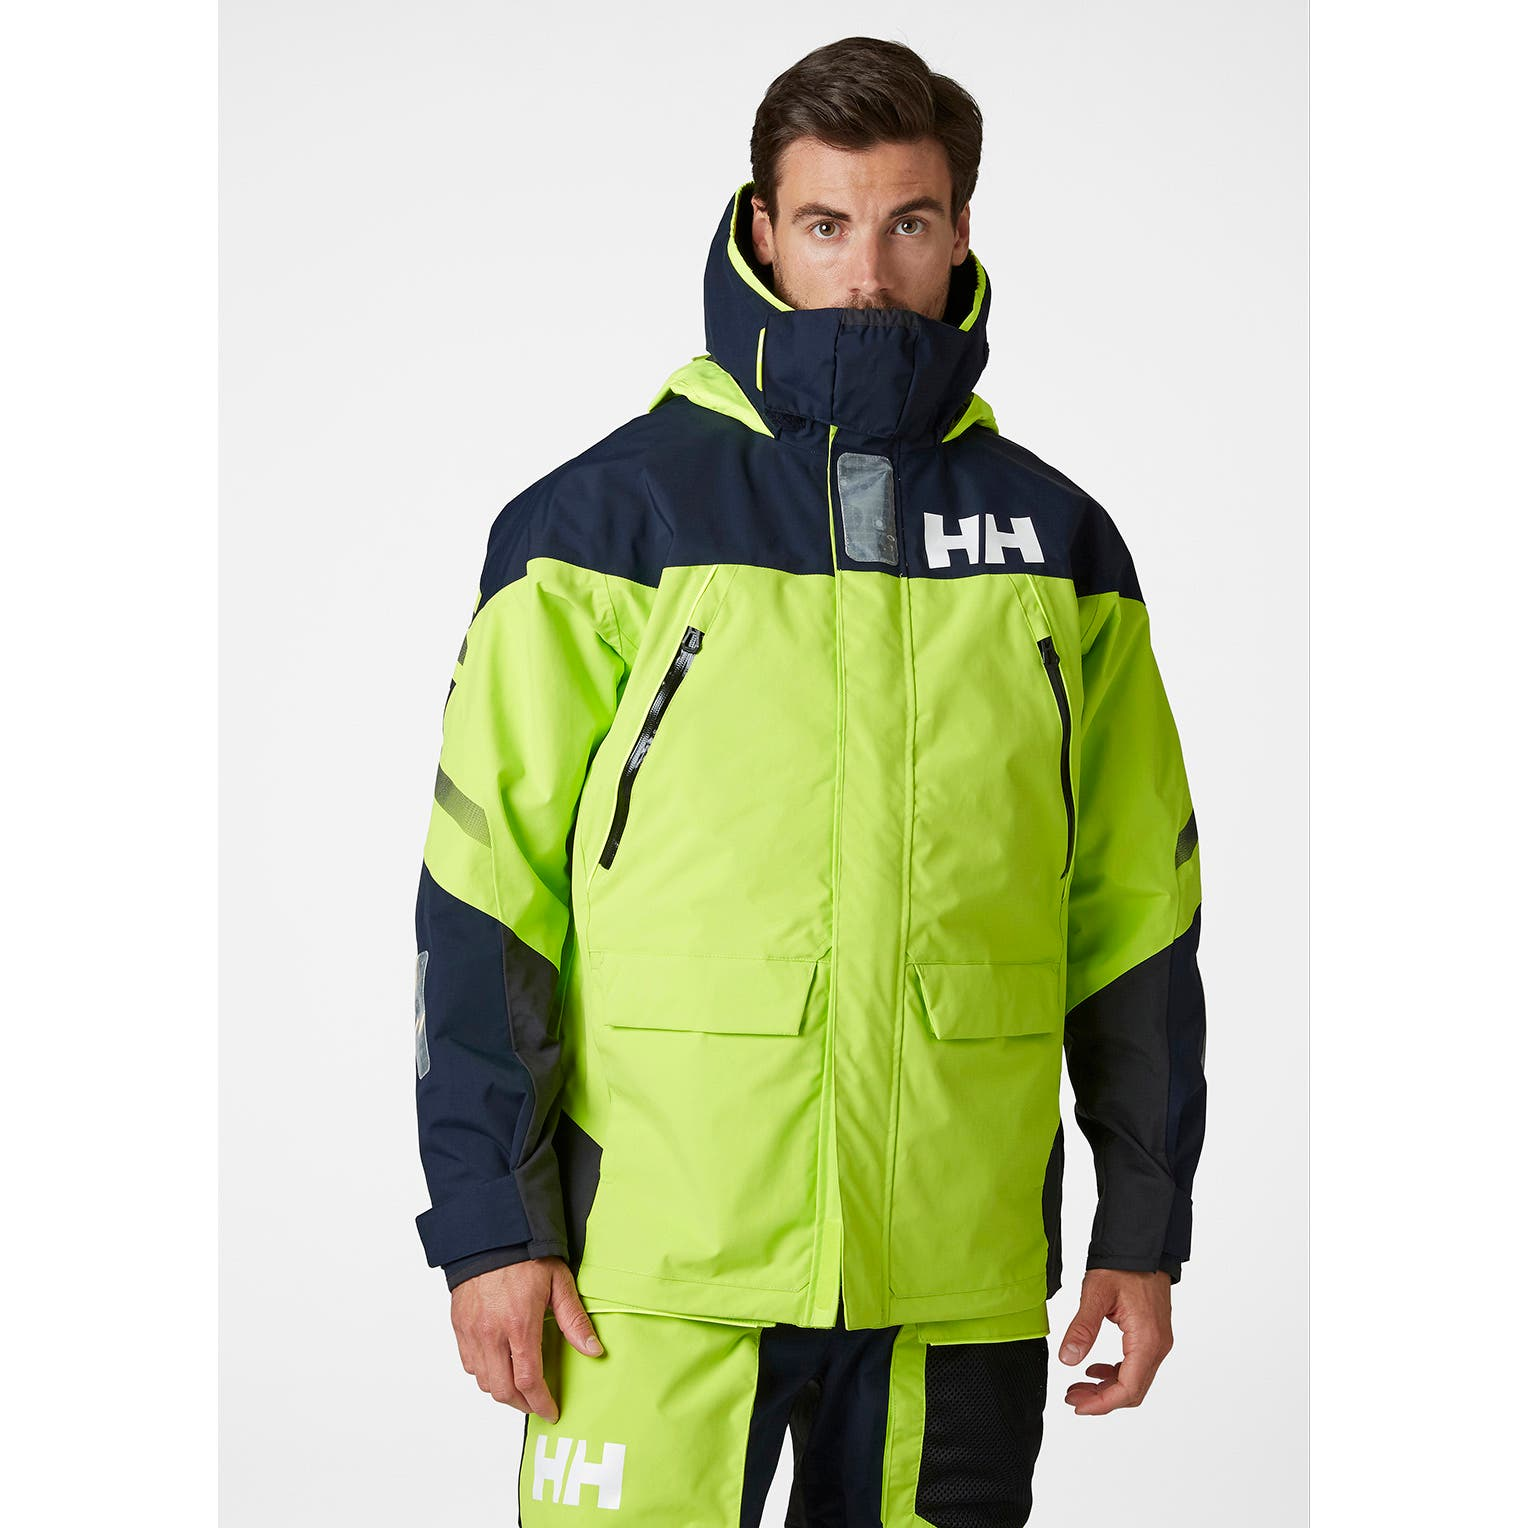 SKAGEN OFFSHORE JACKET L AZID LIME